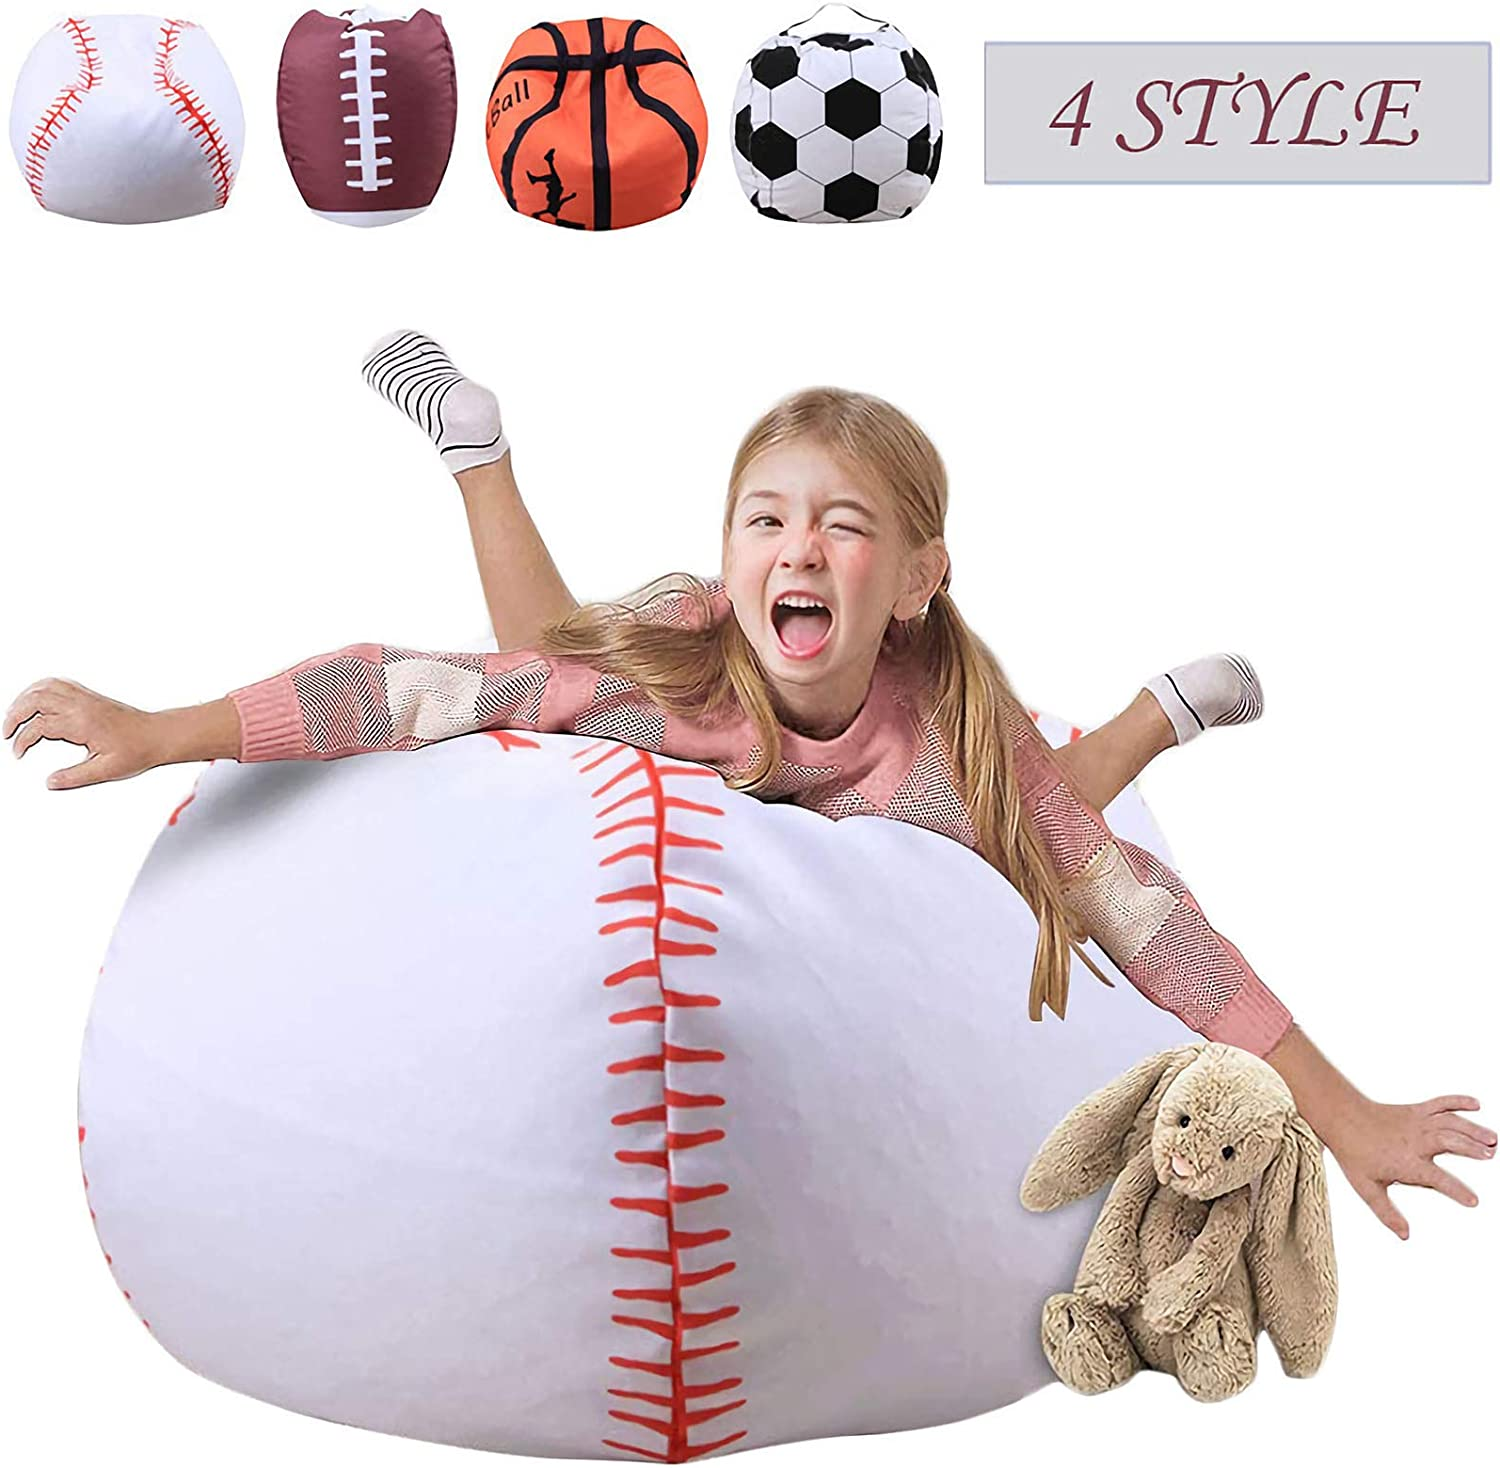 Storage Bean Bag Chairs for Kids 26 Inch Stuffed Animal Extra Large Blanket Fill Beanbag Cover Plush Organizer for Child Stuffed Seat Storage Sack Soft Smooth Polyester Kid'S Room,Baseball